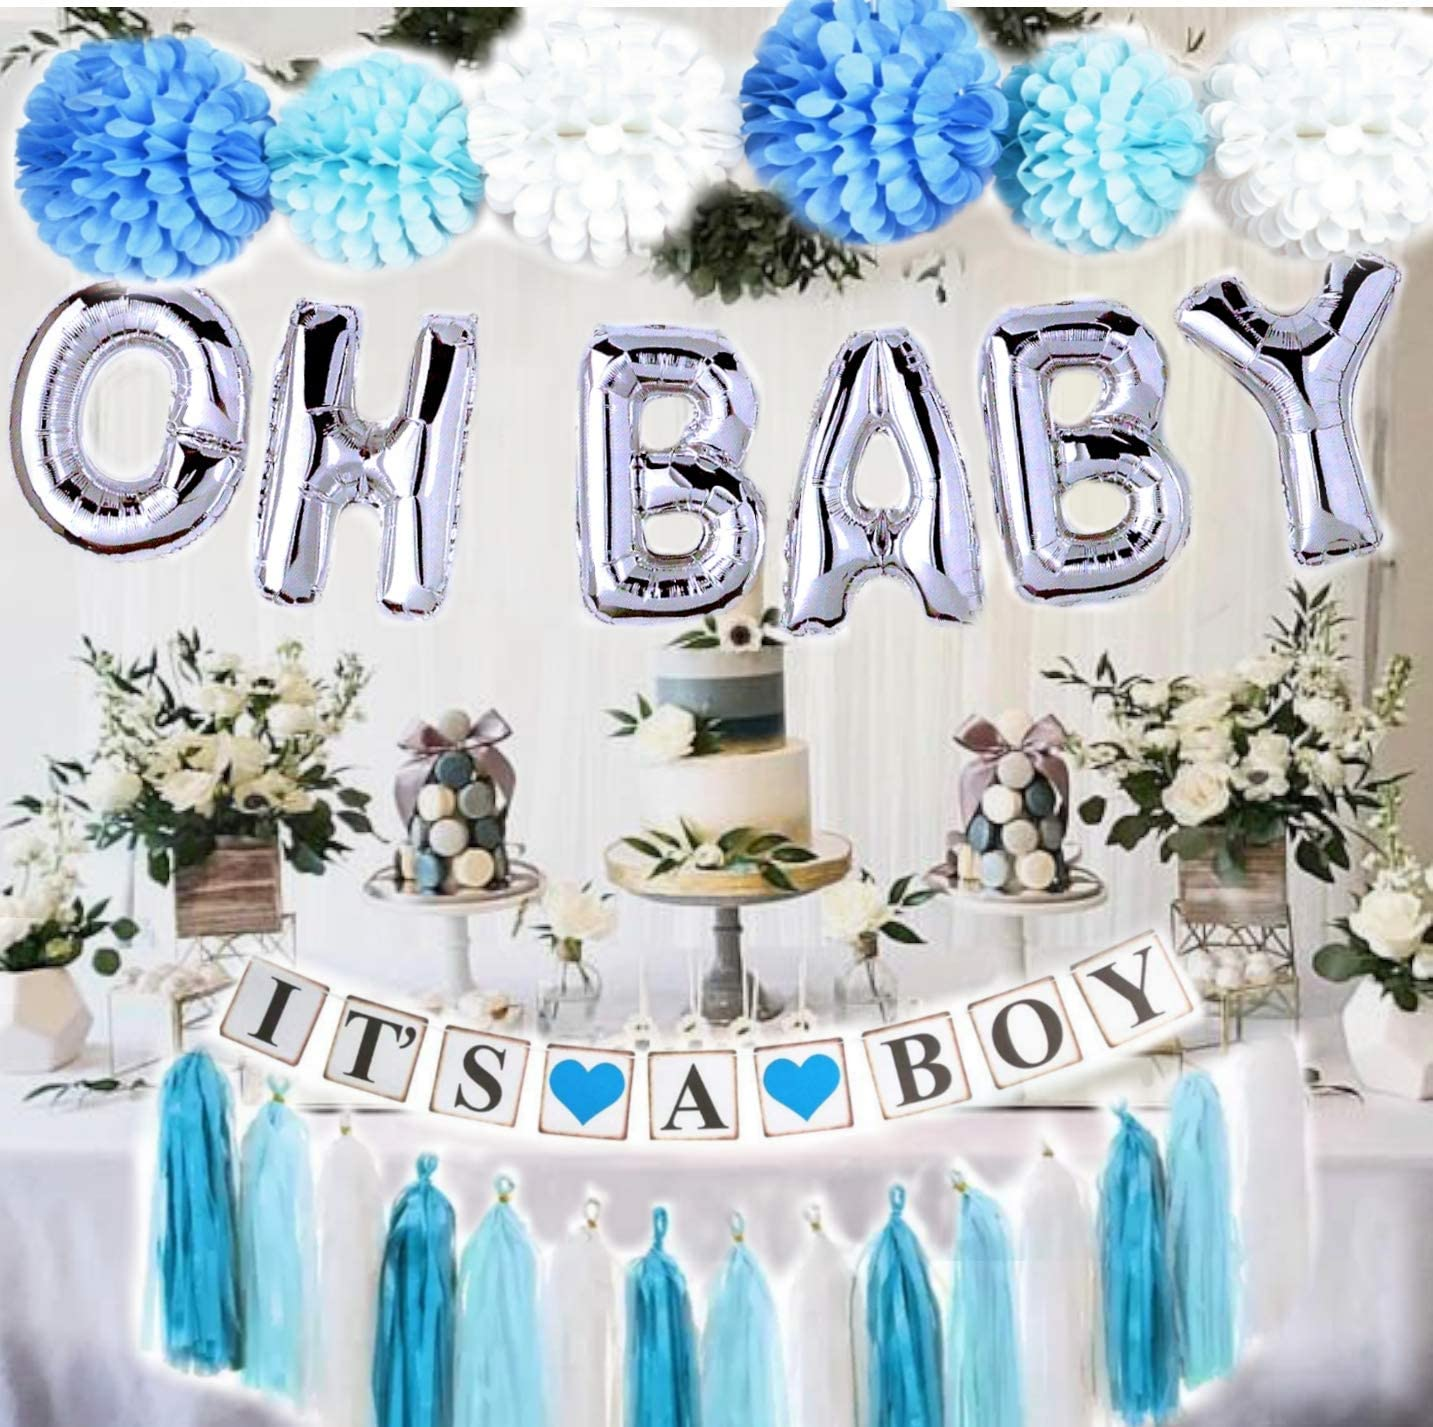 Amazon Com Baby Shower Decorations For Boy Oh Baby Letters Balloons 6 Pompoms It S A Boy Banner Blue Tasells Blue Silver And Grey Baby Shower Party Decorations Blue Backdrop Centerpiece Home Kitchen